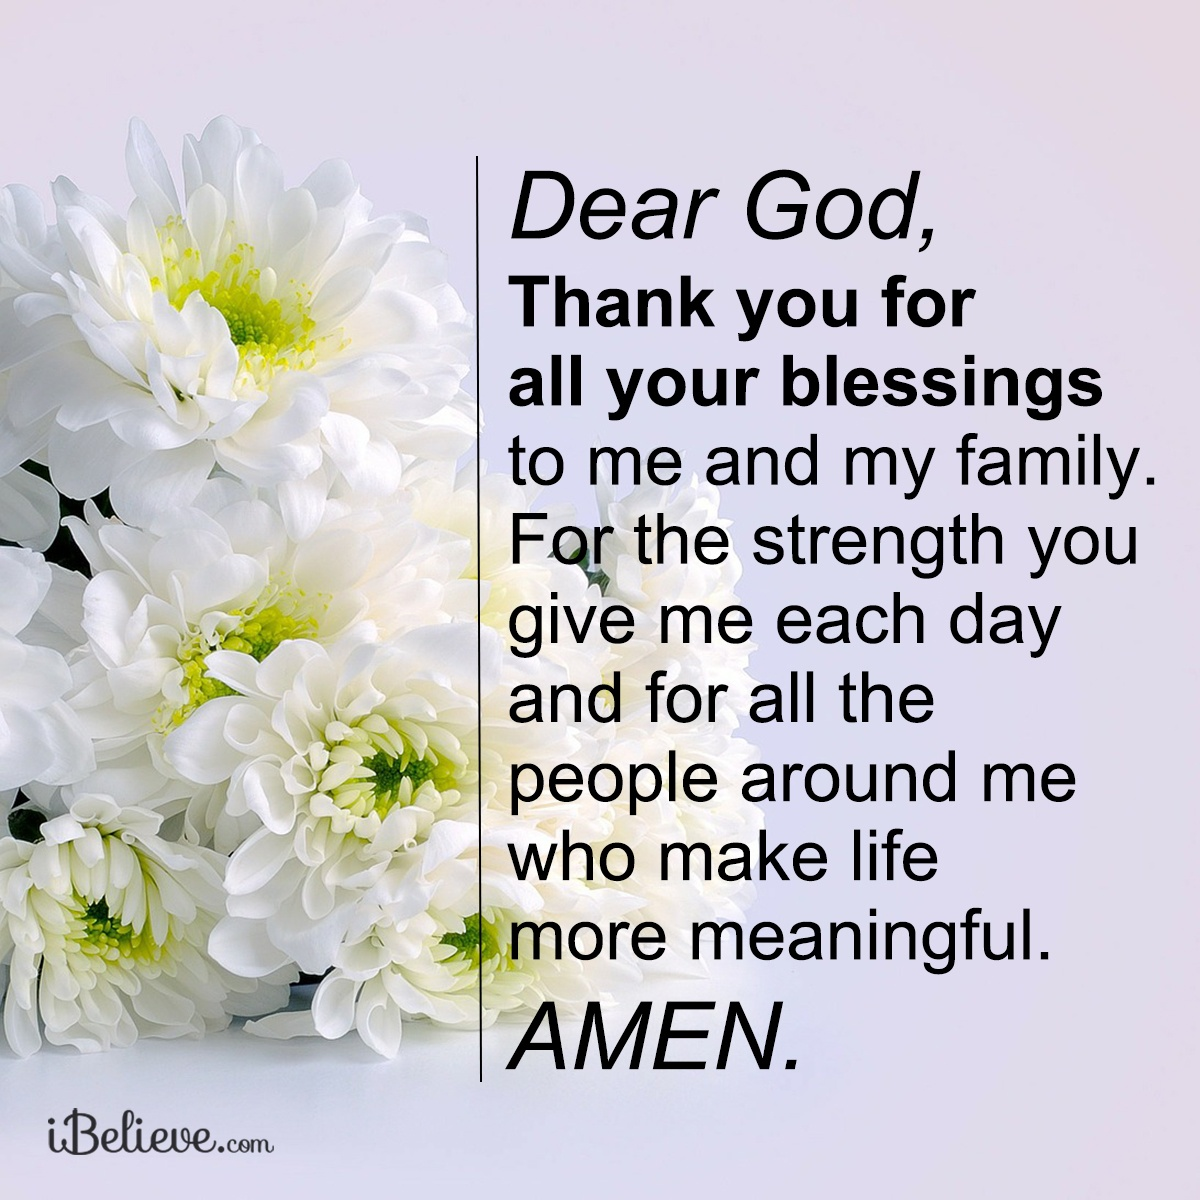 Superb All Your Blessings Your Daily Verse Dear Thank You Dear Thank You All Your Blessings Thank You Frame Wedding Thank You S photos Thank You Picture